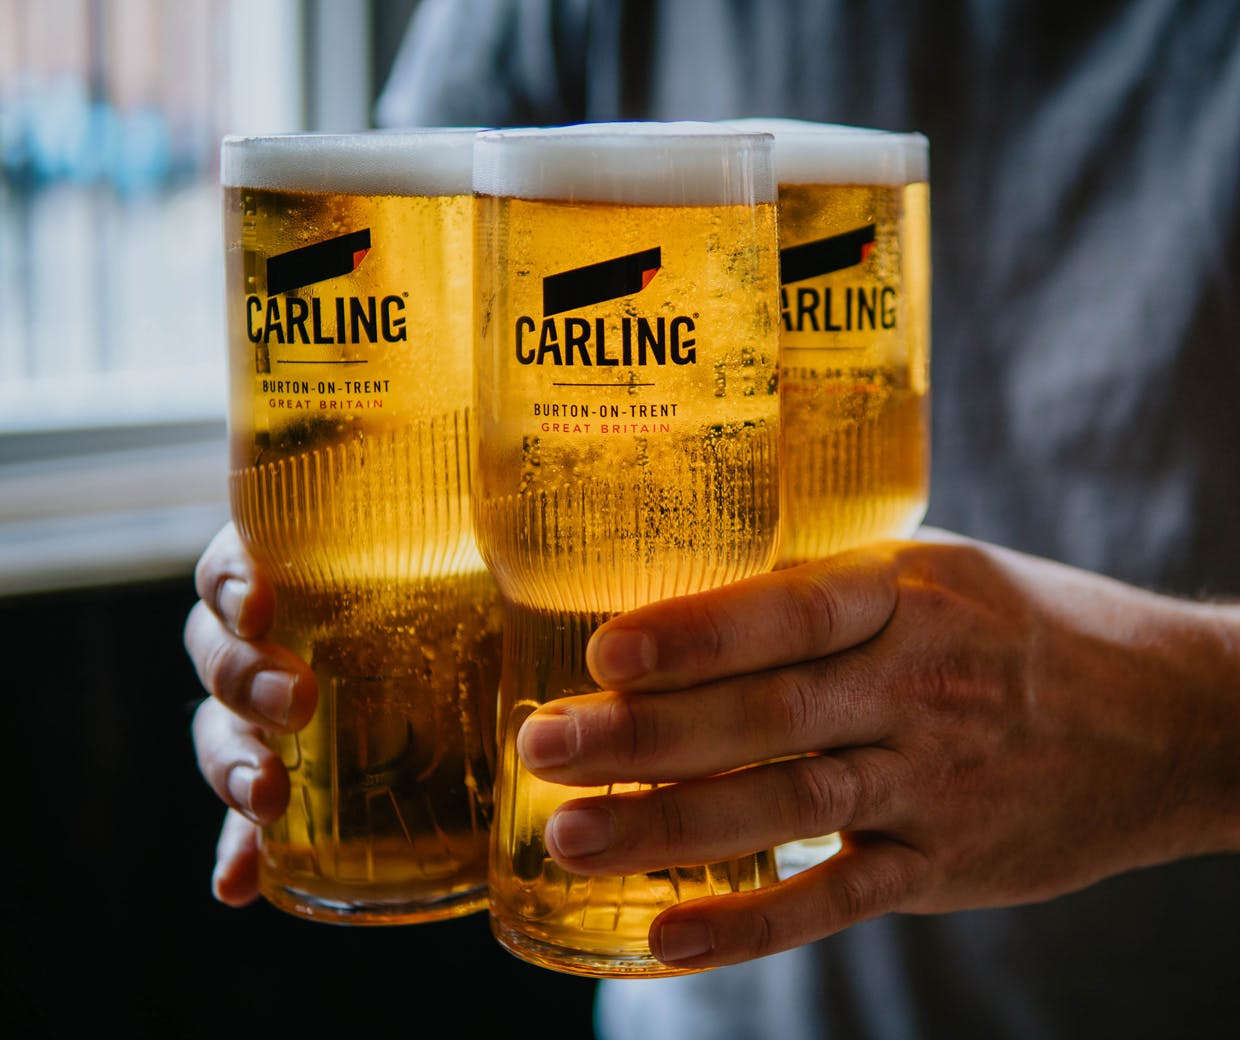 Carling owner launches premium marketing hub to drive 'closeness with consumers'